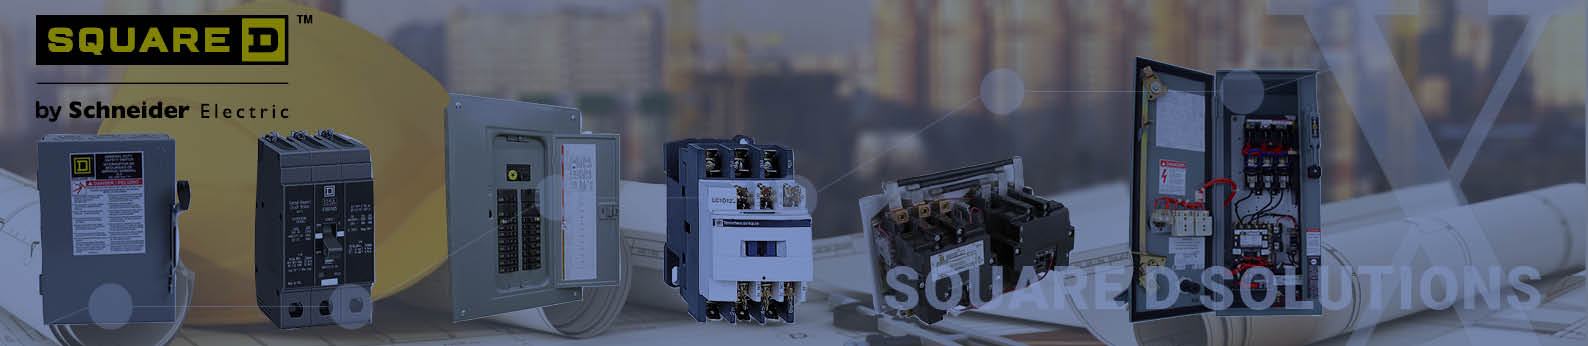 Square D and Connexion Power Solutions